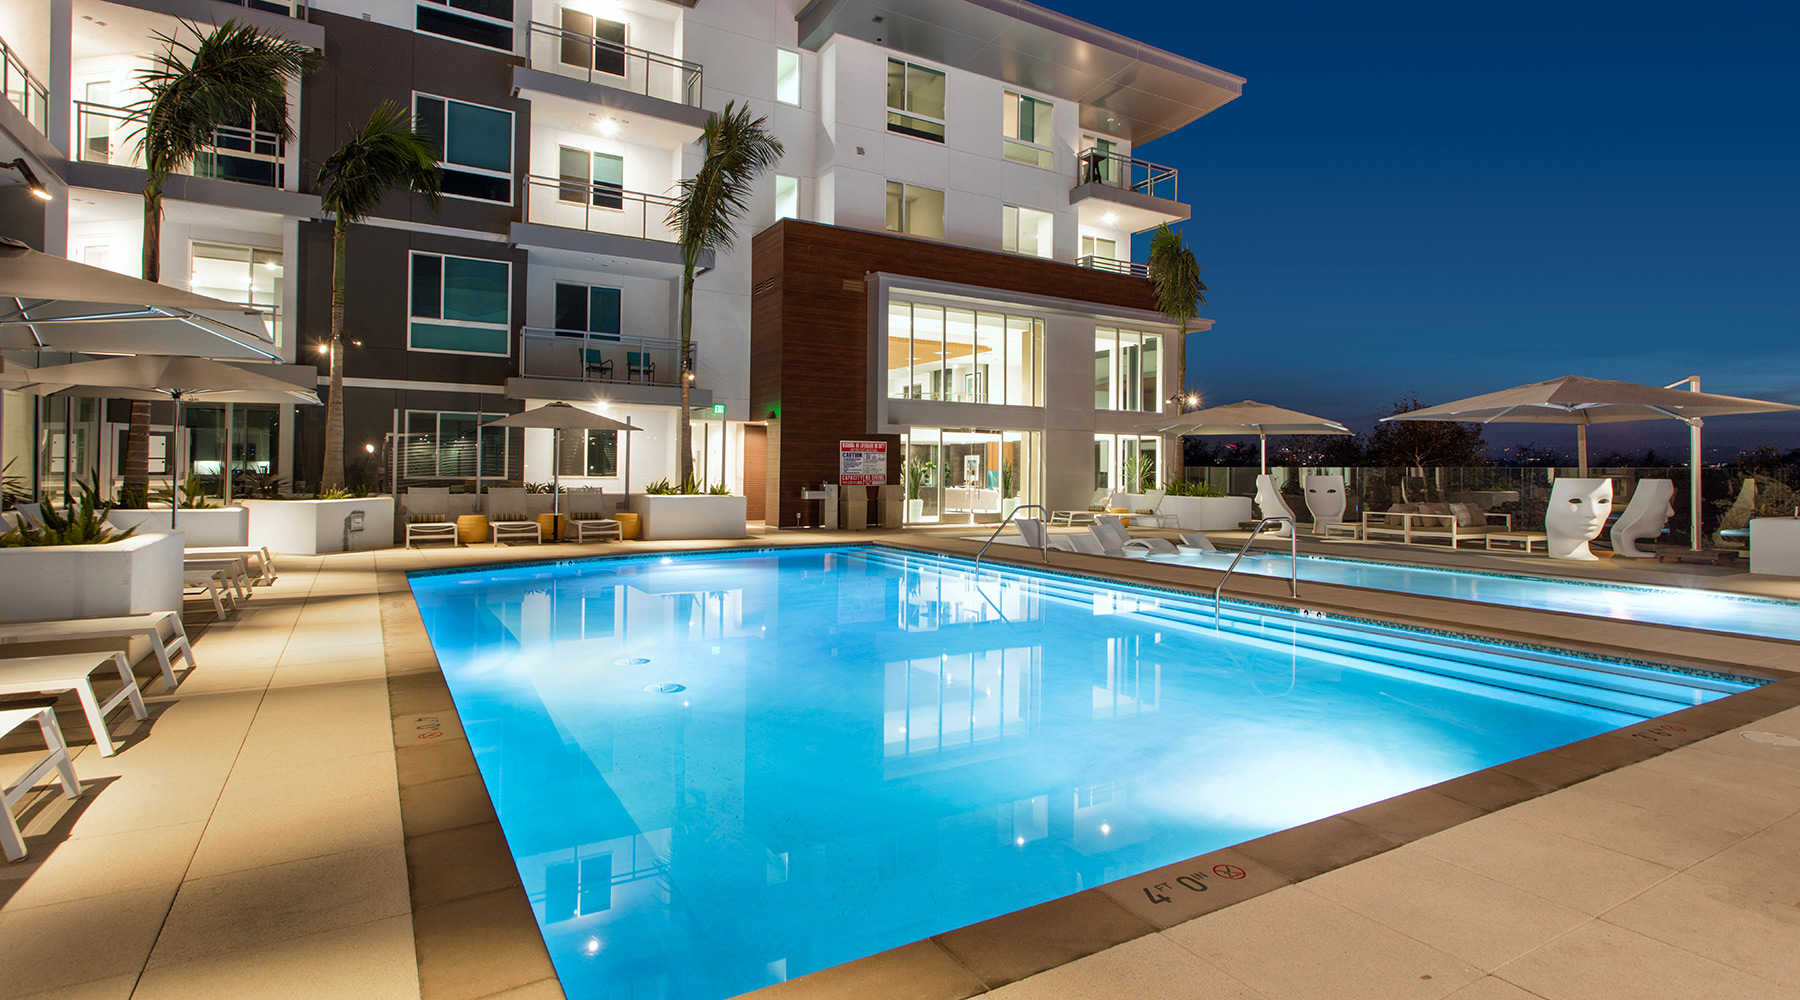 The Royce - Sparkling Salt Water Pool in Irvine